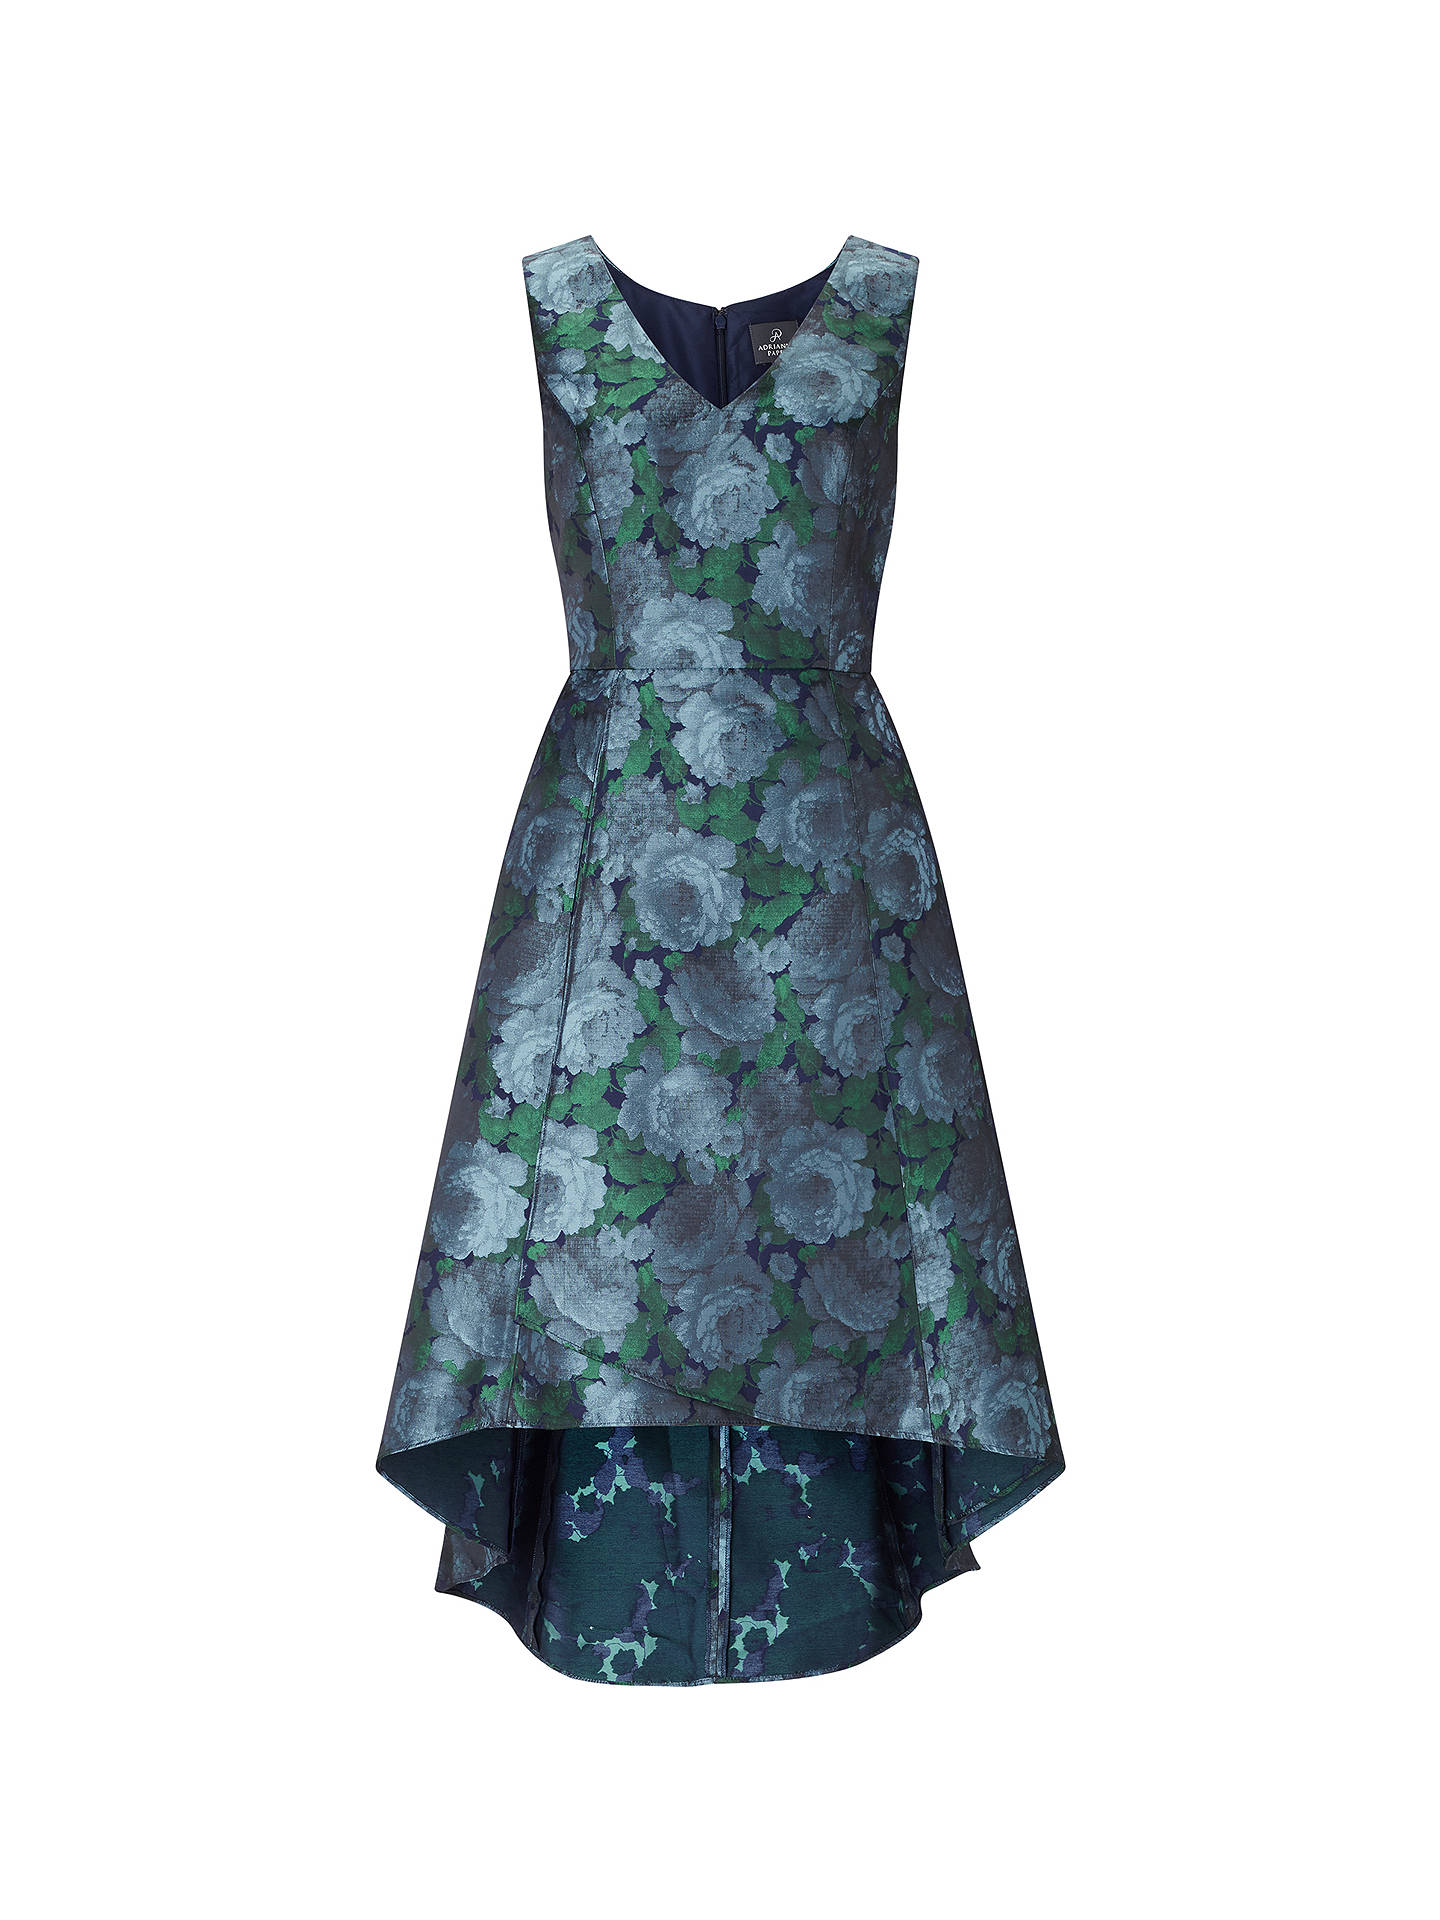 BuyAdrianna Papell High-Low Floral Dress, Blue/Navy, 8 Online at johnlewis.com